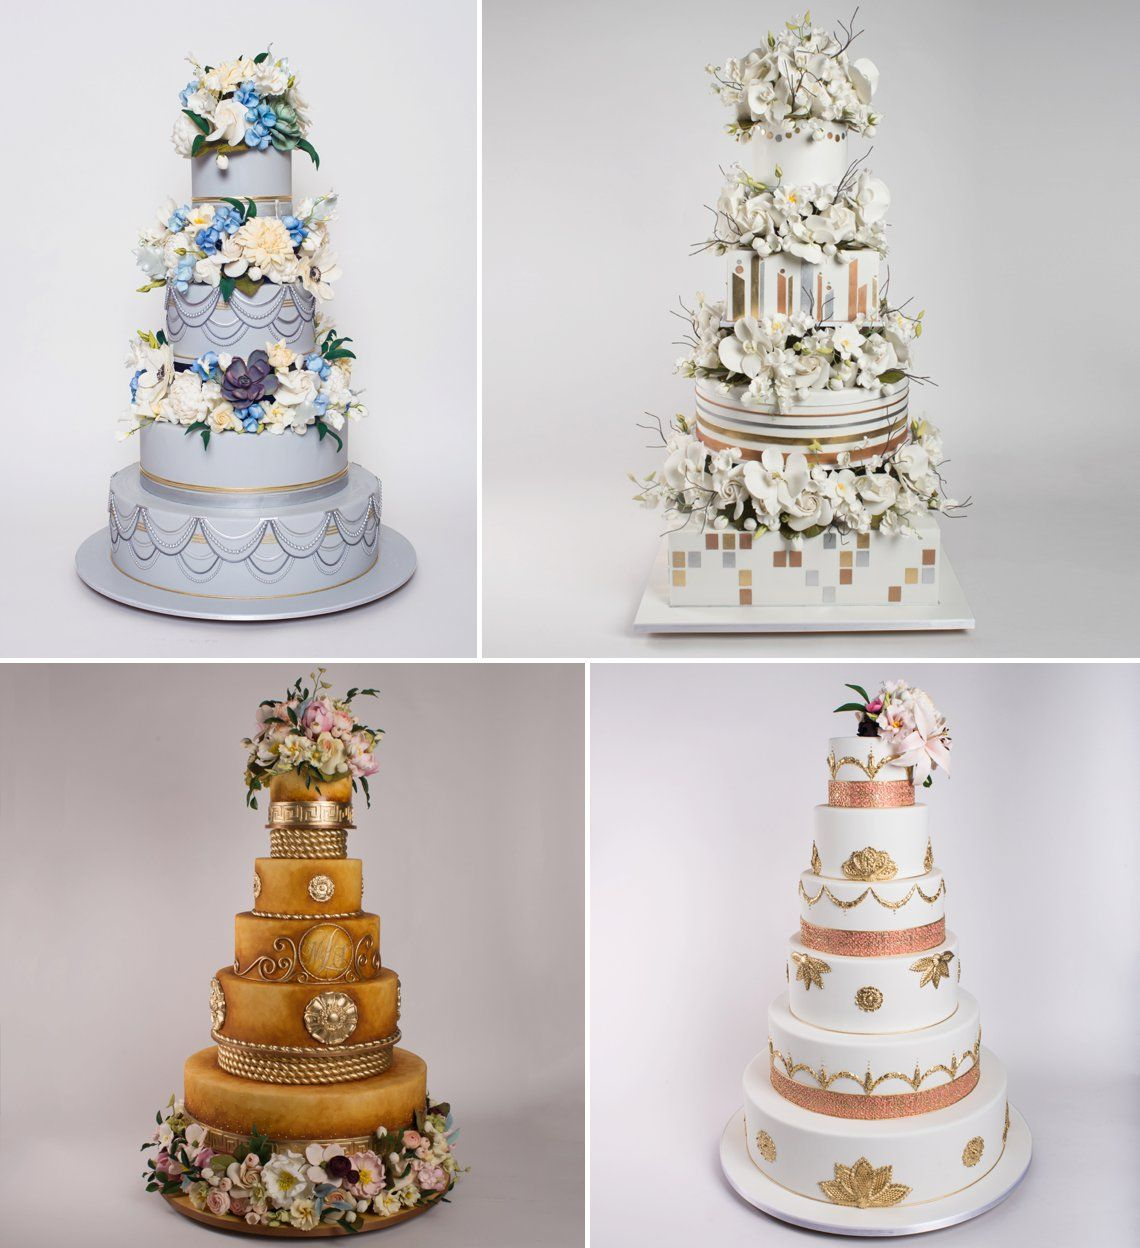 Ron Ben Israel One Of The Best Wedding Cake Designers In World